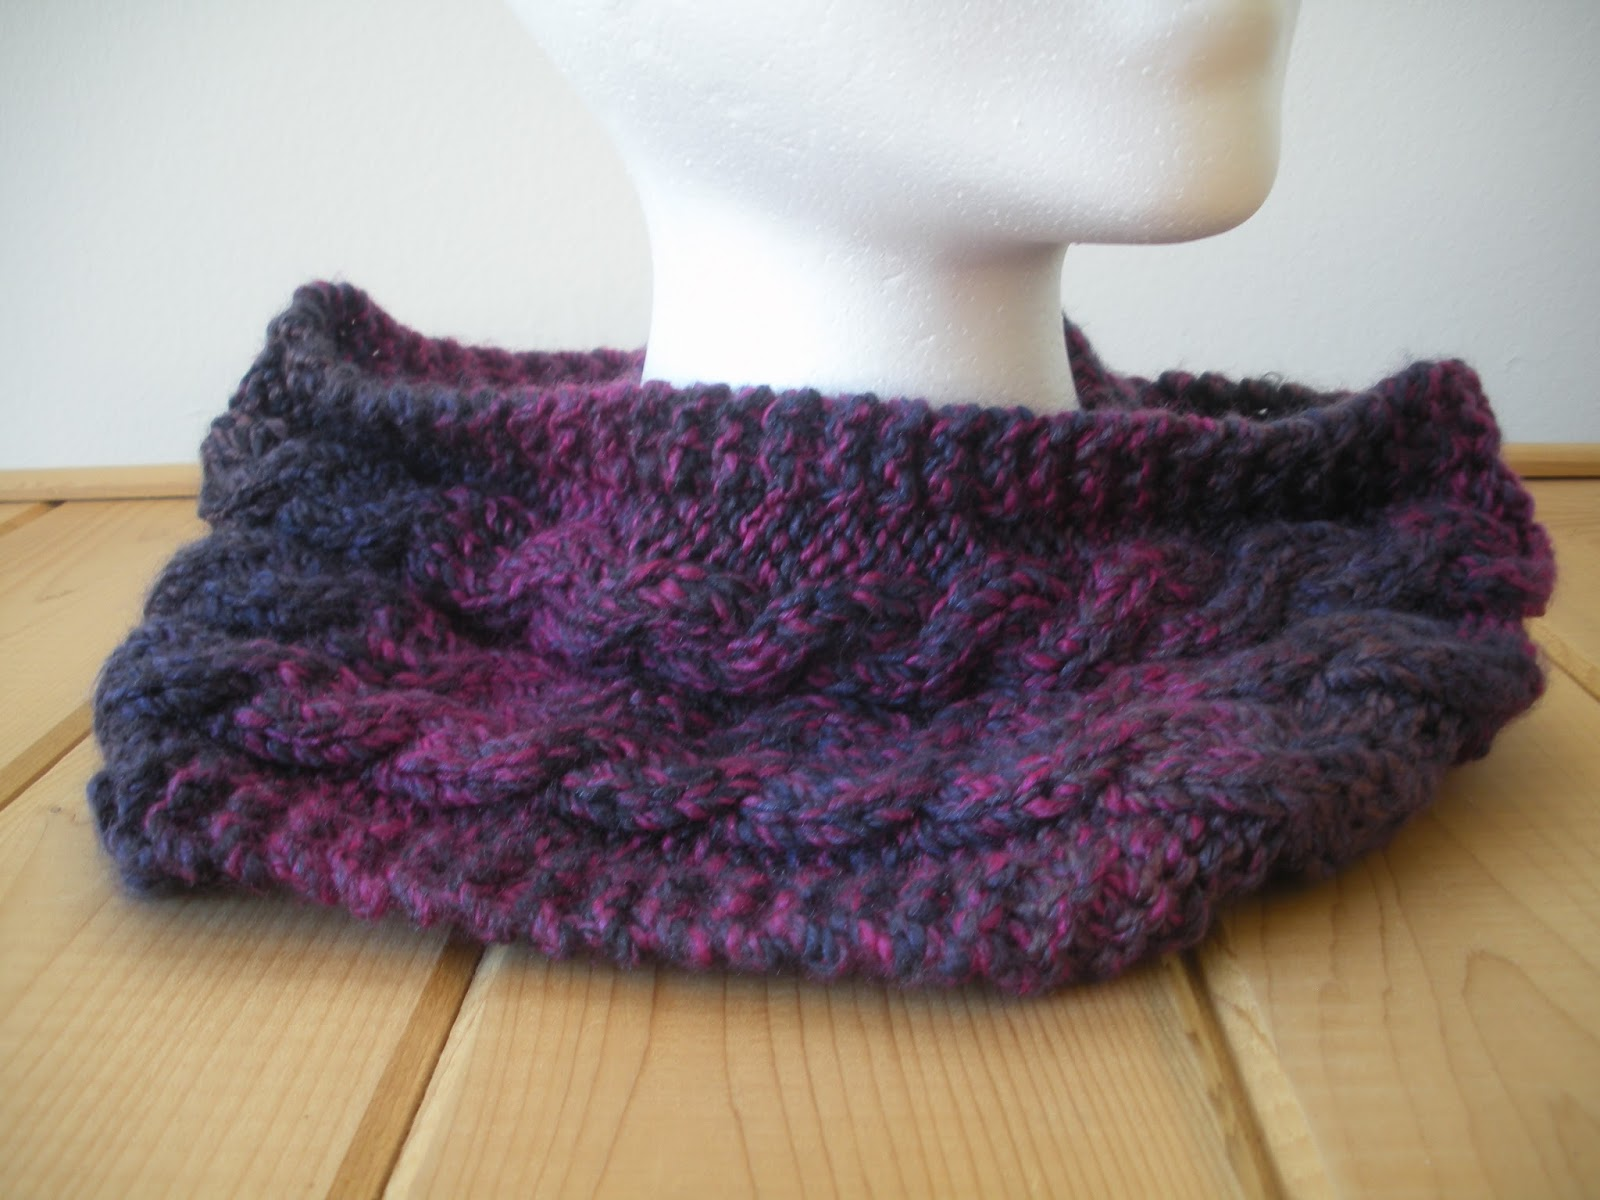 Free Knitting Patterns For Cabled Cowls : Yarn In, Yarn Out: Free Pattern: Able Cable Cowl